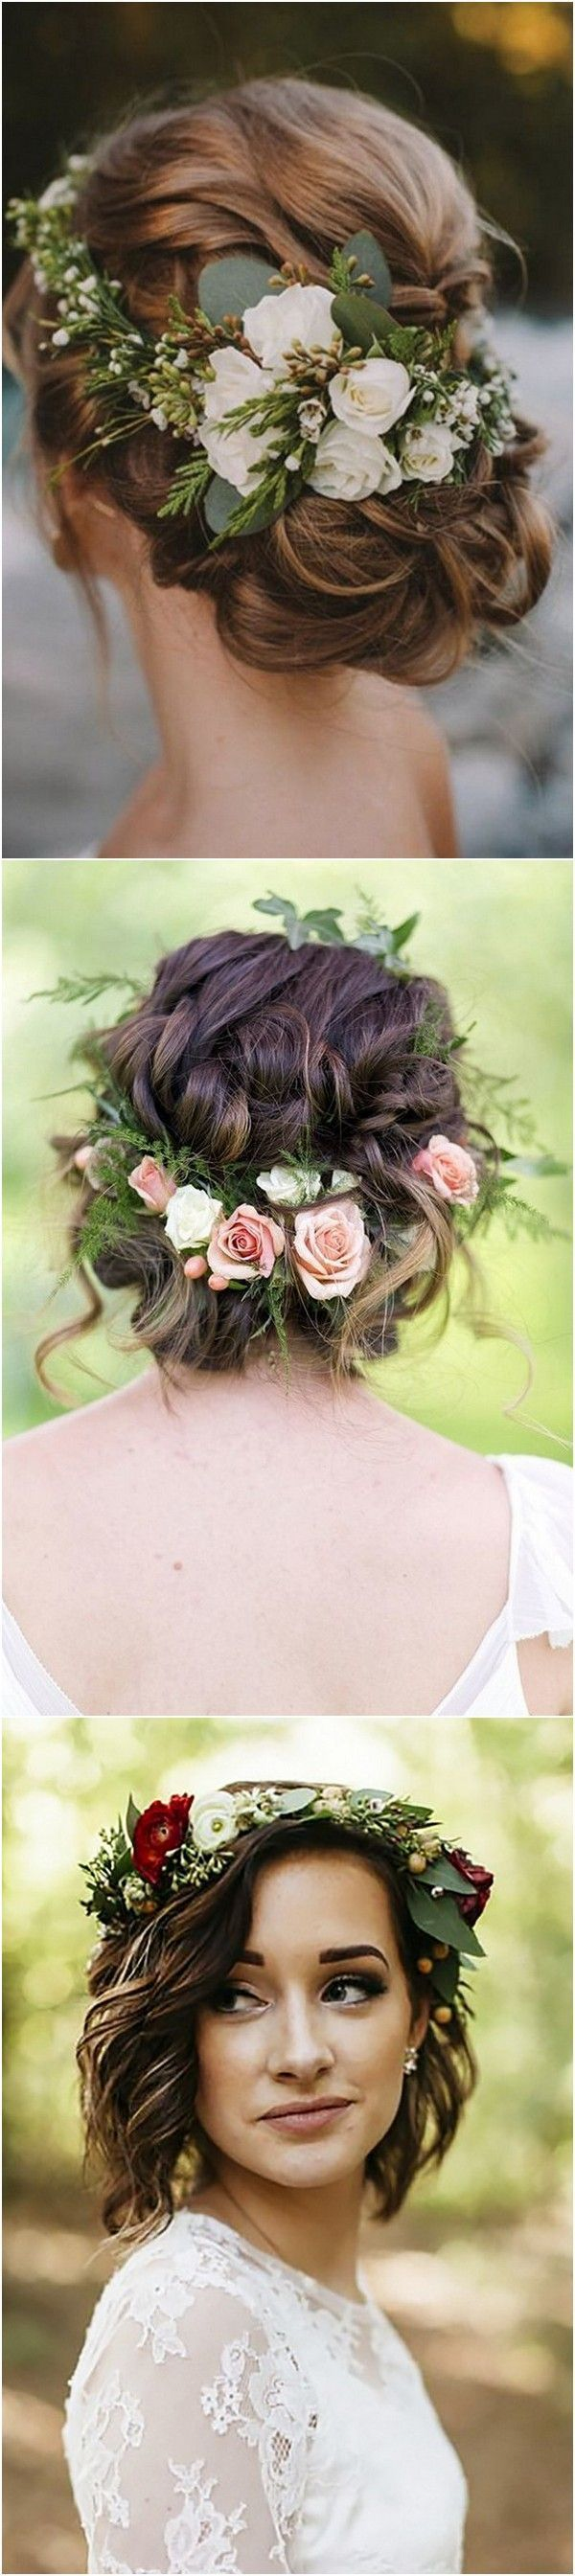 18 gorgeous wedding hairstyles with flower crown weddingideas 18 gorgeous wedding hairstyles with flower crown weddingideas flower crowns and crown izmirmasajfo